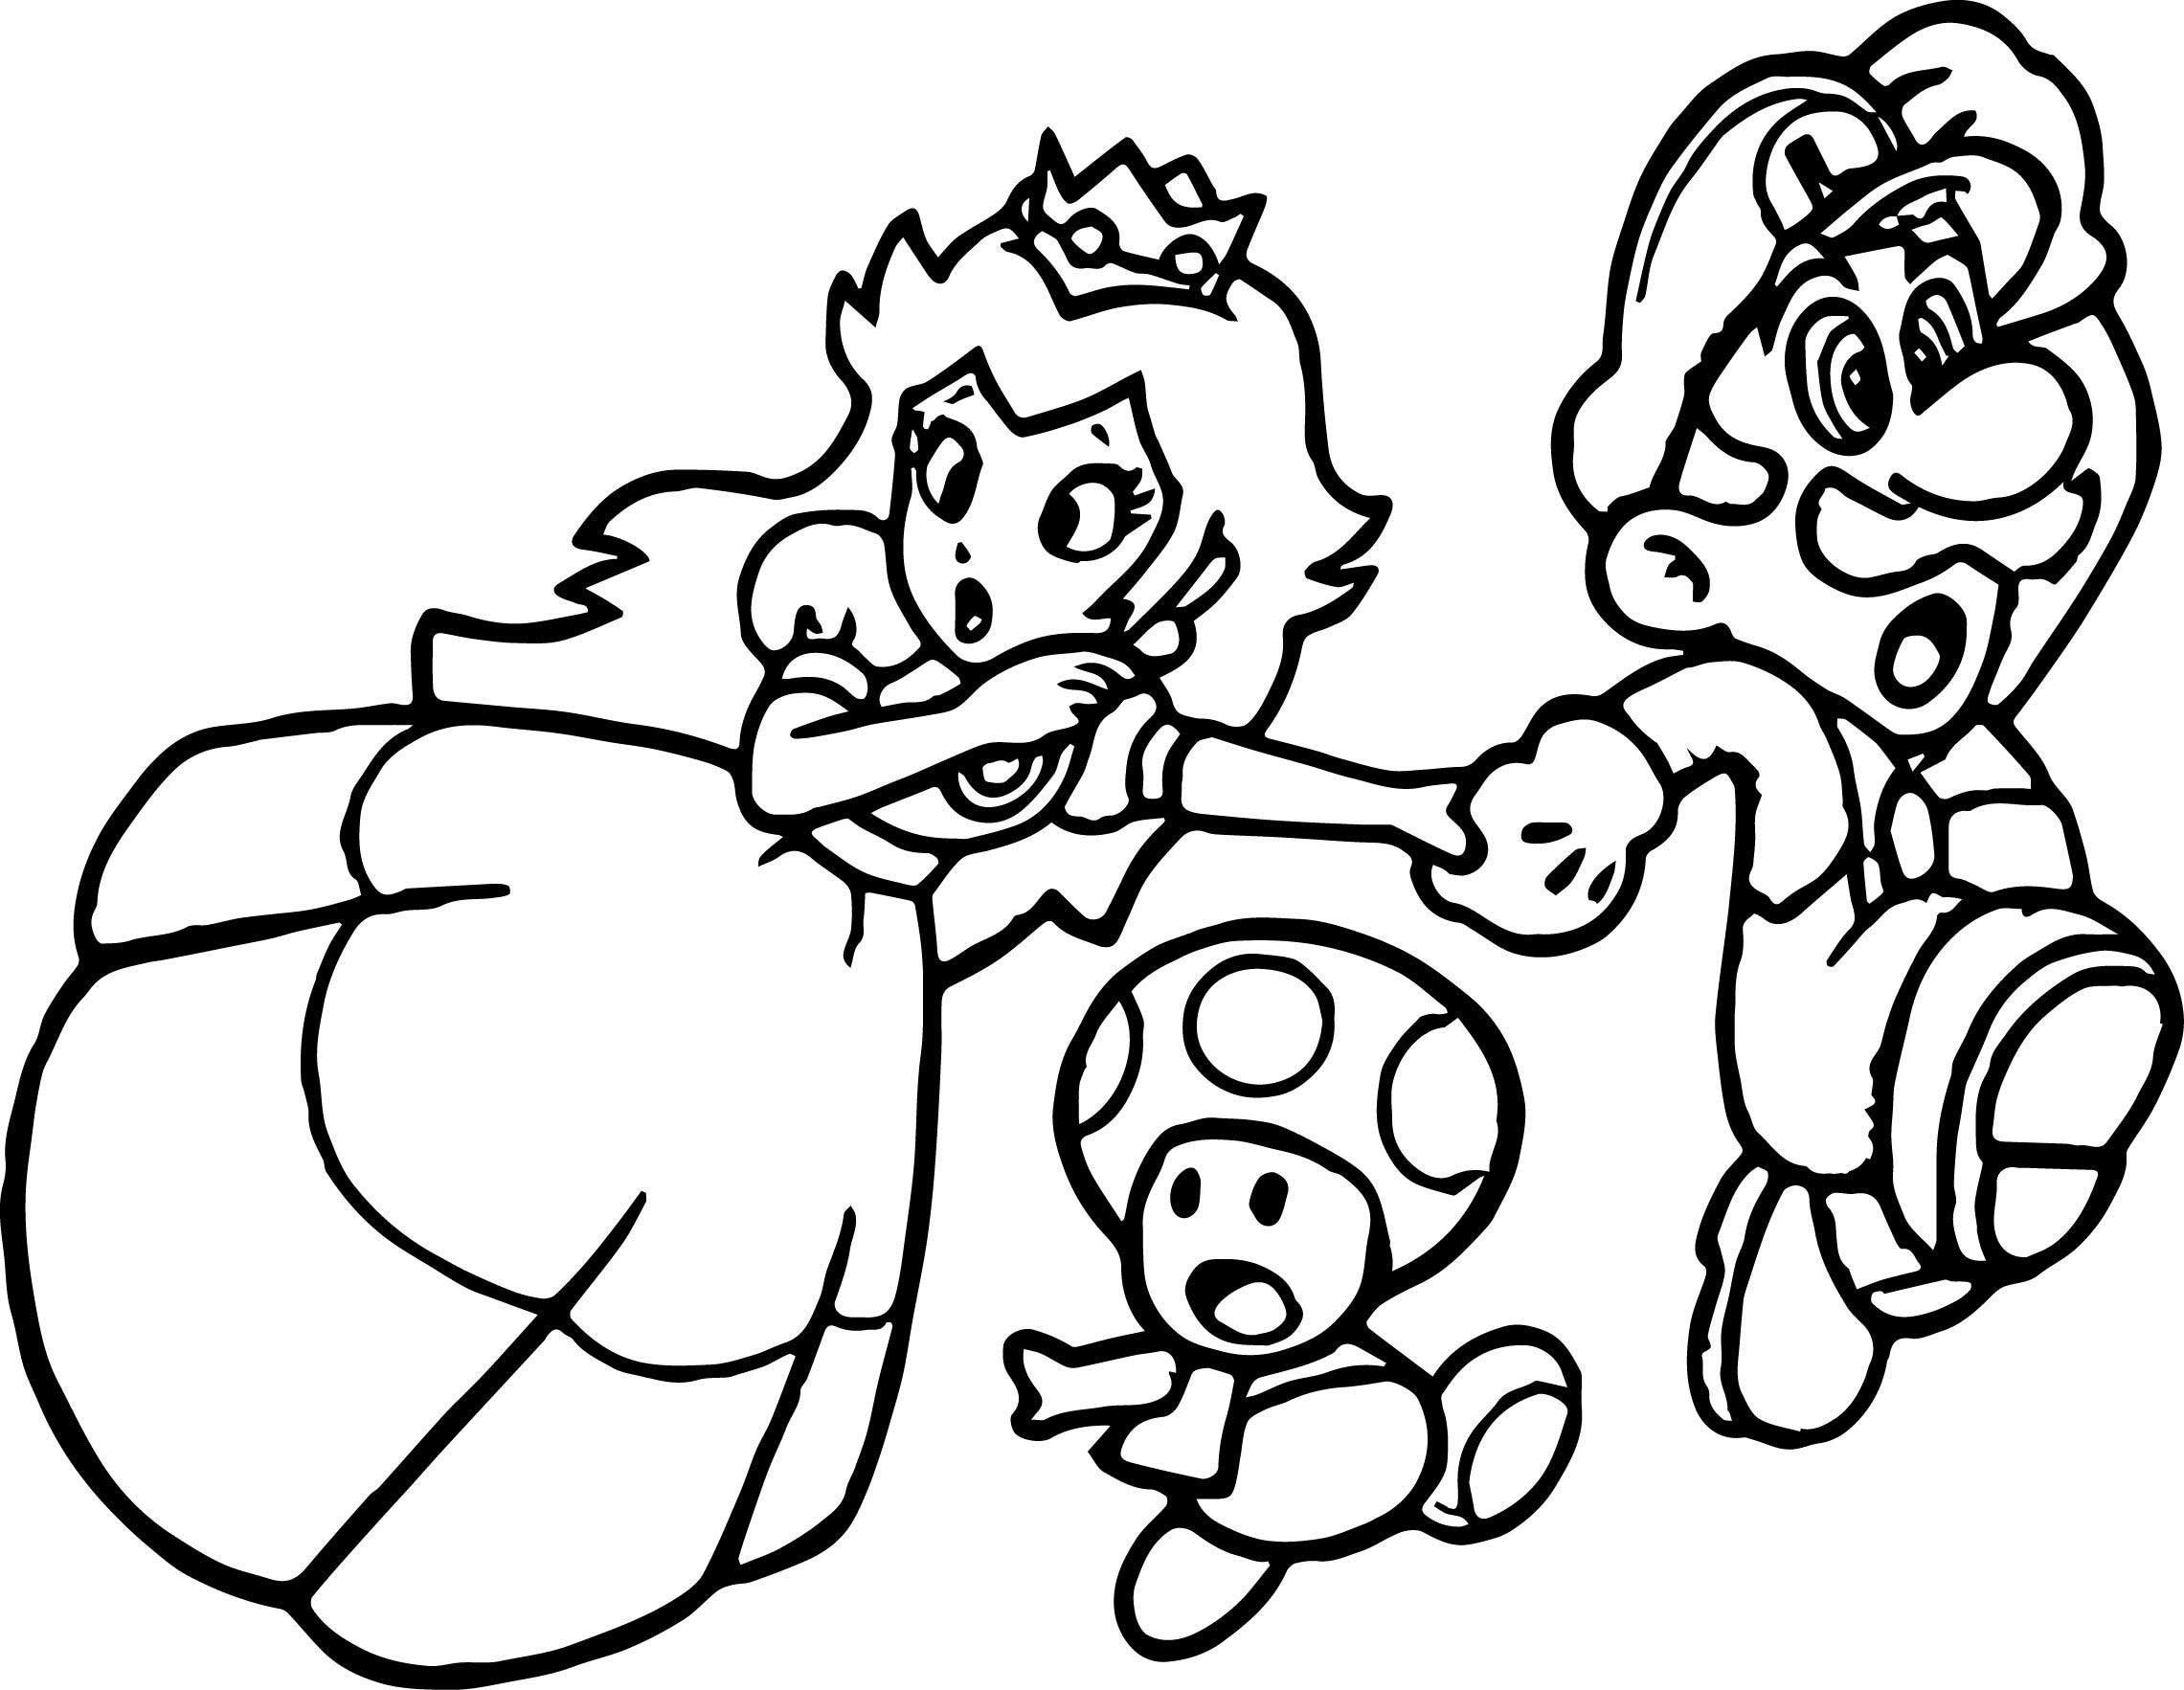 Super Mario Coloring Book Fresh Super Mario Coloring Page 650 503 Super Mario Princess Super Mario Coloring Pages Mario Coloring Pages Cartoon Coloring Pages